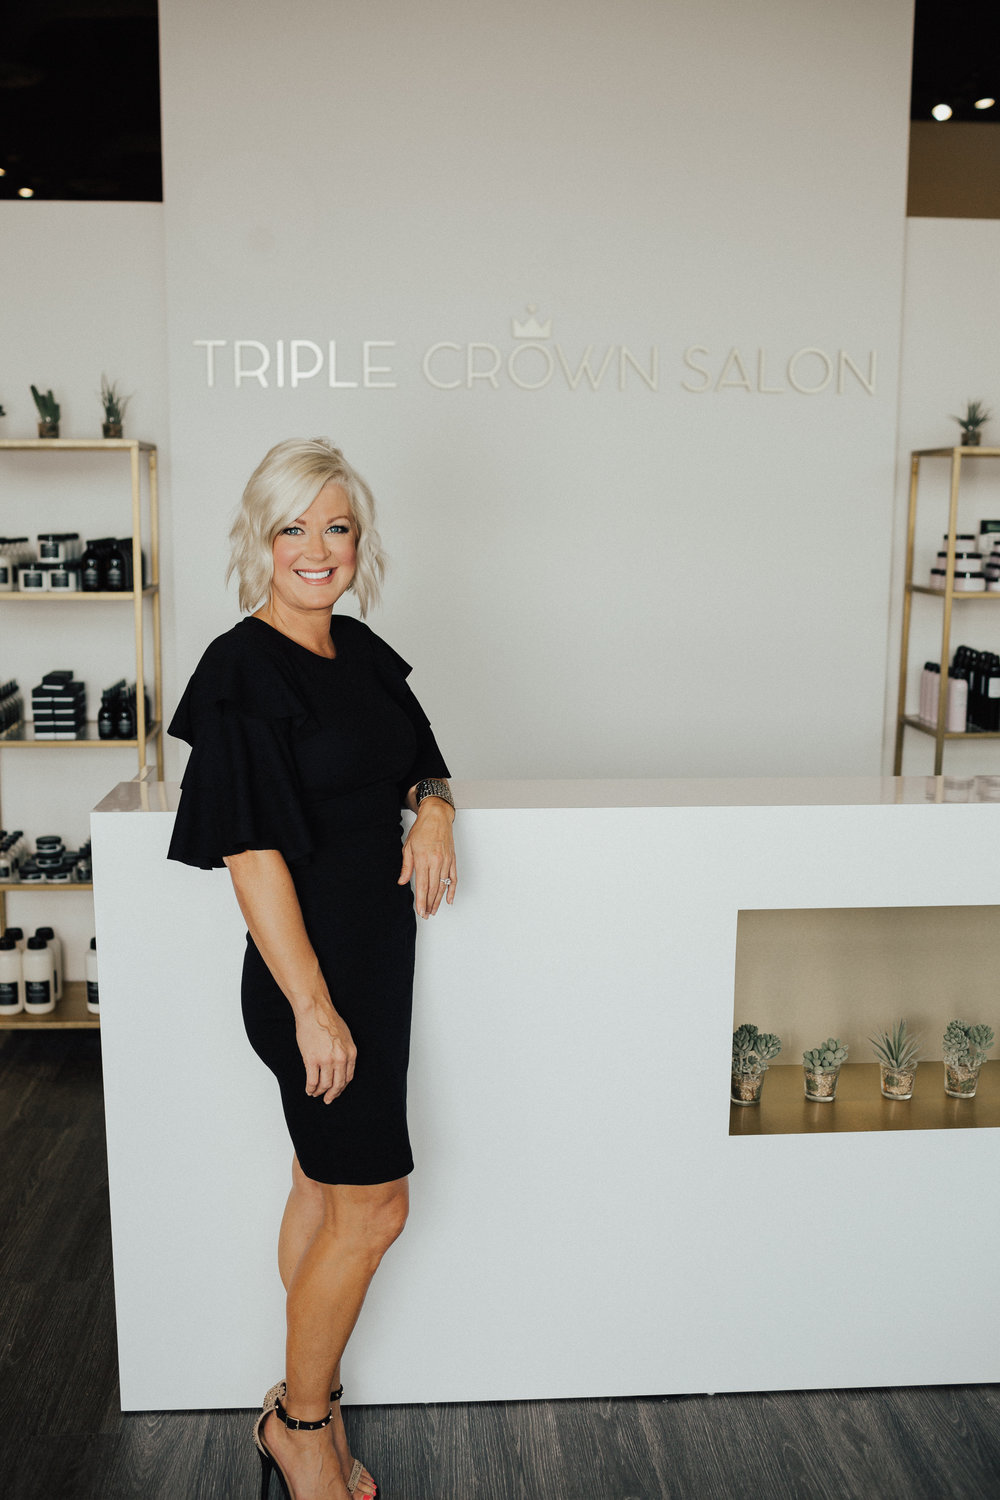 About - Triple Crown Salon owner Anne Heck understands that life can be a wild ride. Anne is a mom, a wife, and now a proud, new salon owner. She started professionally styling hair in 1997. She is a believer in on-going education and continues to educate herself and staff in the latest trends, techniques and products. At Triple Crown Salon, you will find stylists who are committed to helping you be authentically beautiful by creating a look that reflects your honest self. Because honestly, everybody is glamorous!Triple Crown Salon is a salon that values quality products designed to help you and our planet stay true, vibrant and beautiful. A certified Green Circle Salon, Triple Crown Salon is dedicated to leaving the smallest carbon footprint with an aggressive recycling program and energy efficient tools. Our Davines product line, imported from Italy, is made using all natural plant based ingredients. Davines is a company that is dedicated to respecting mother nature and sustainable beauty.